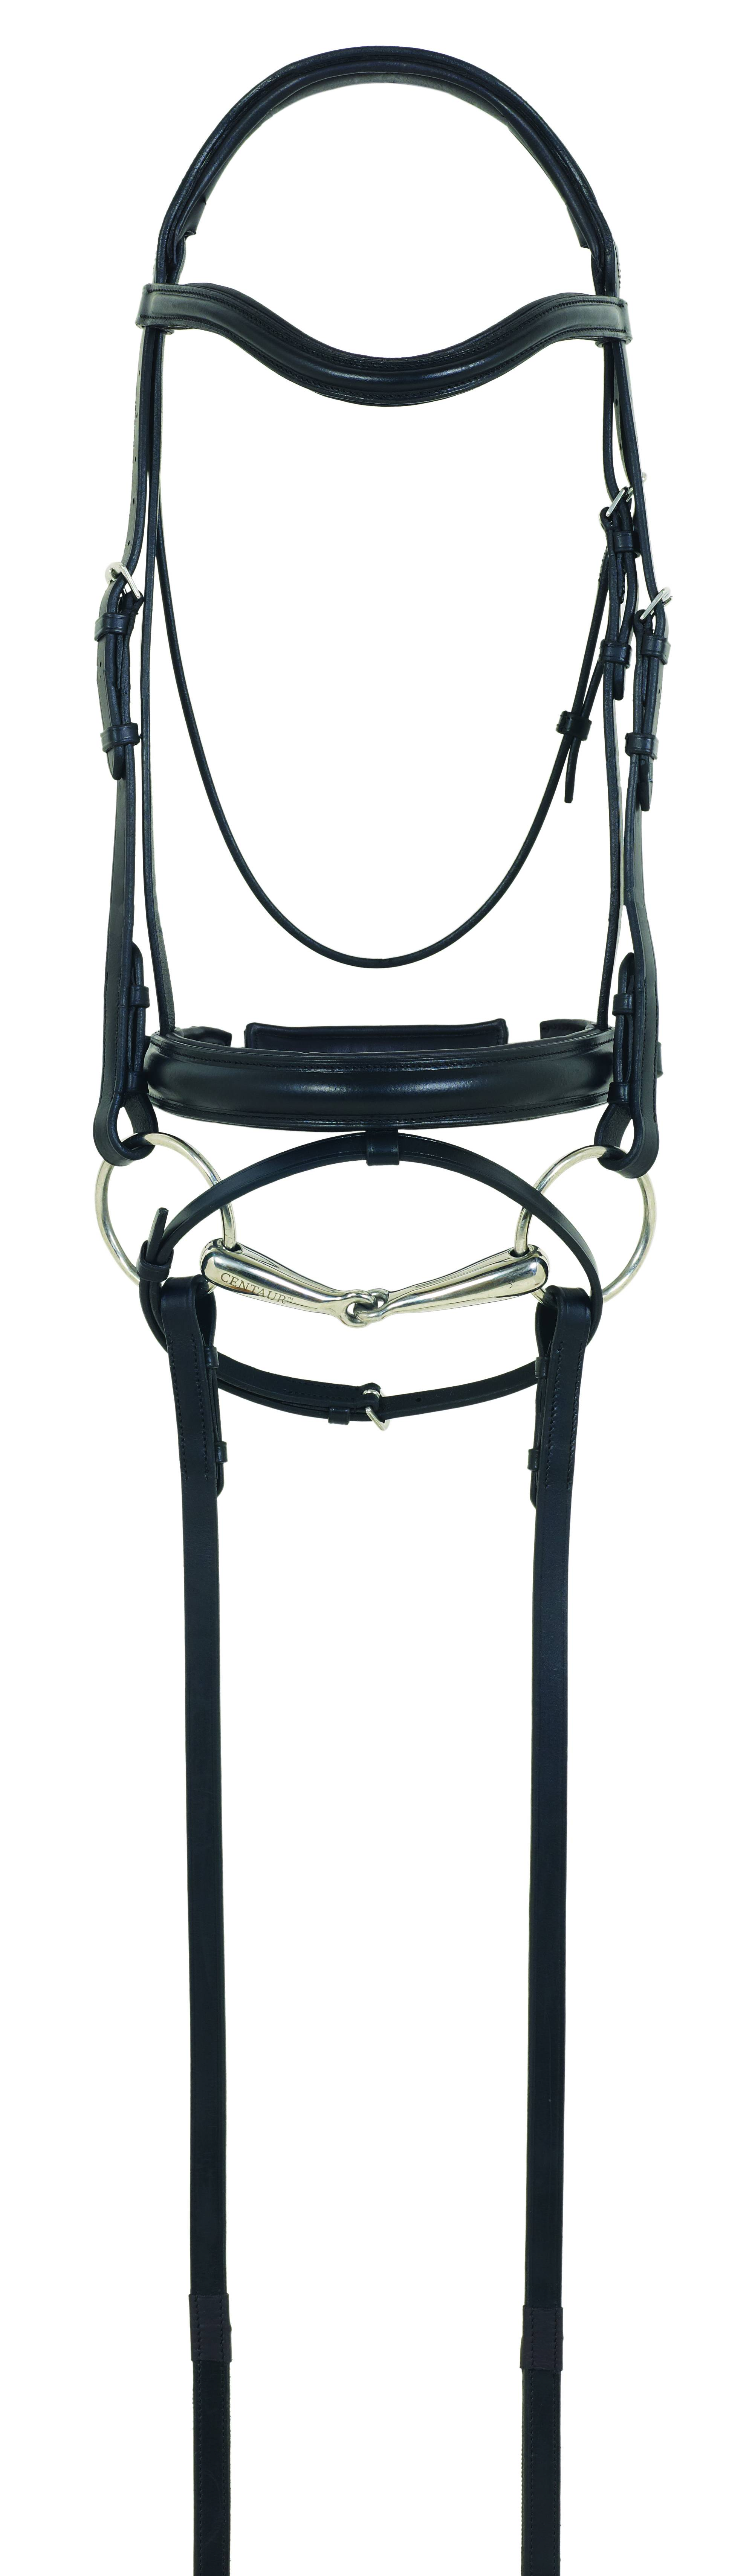 Camelot RCS Crank Flash Dressage Bridle